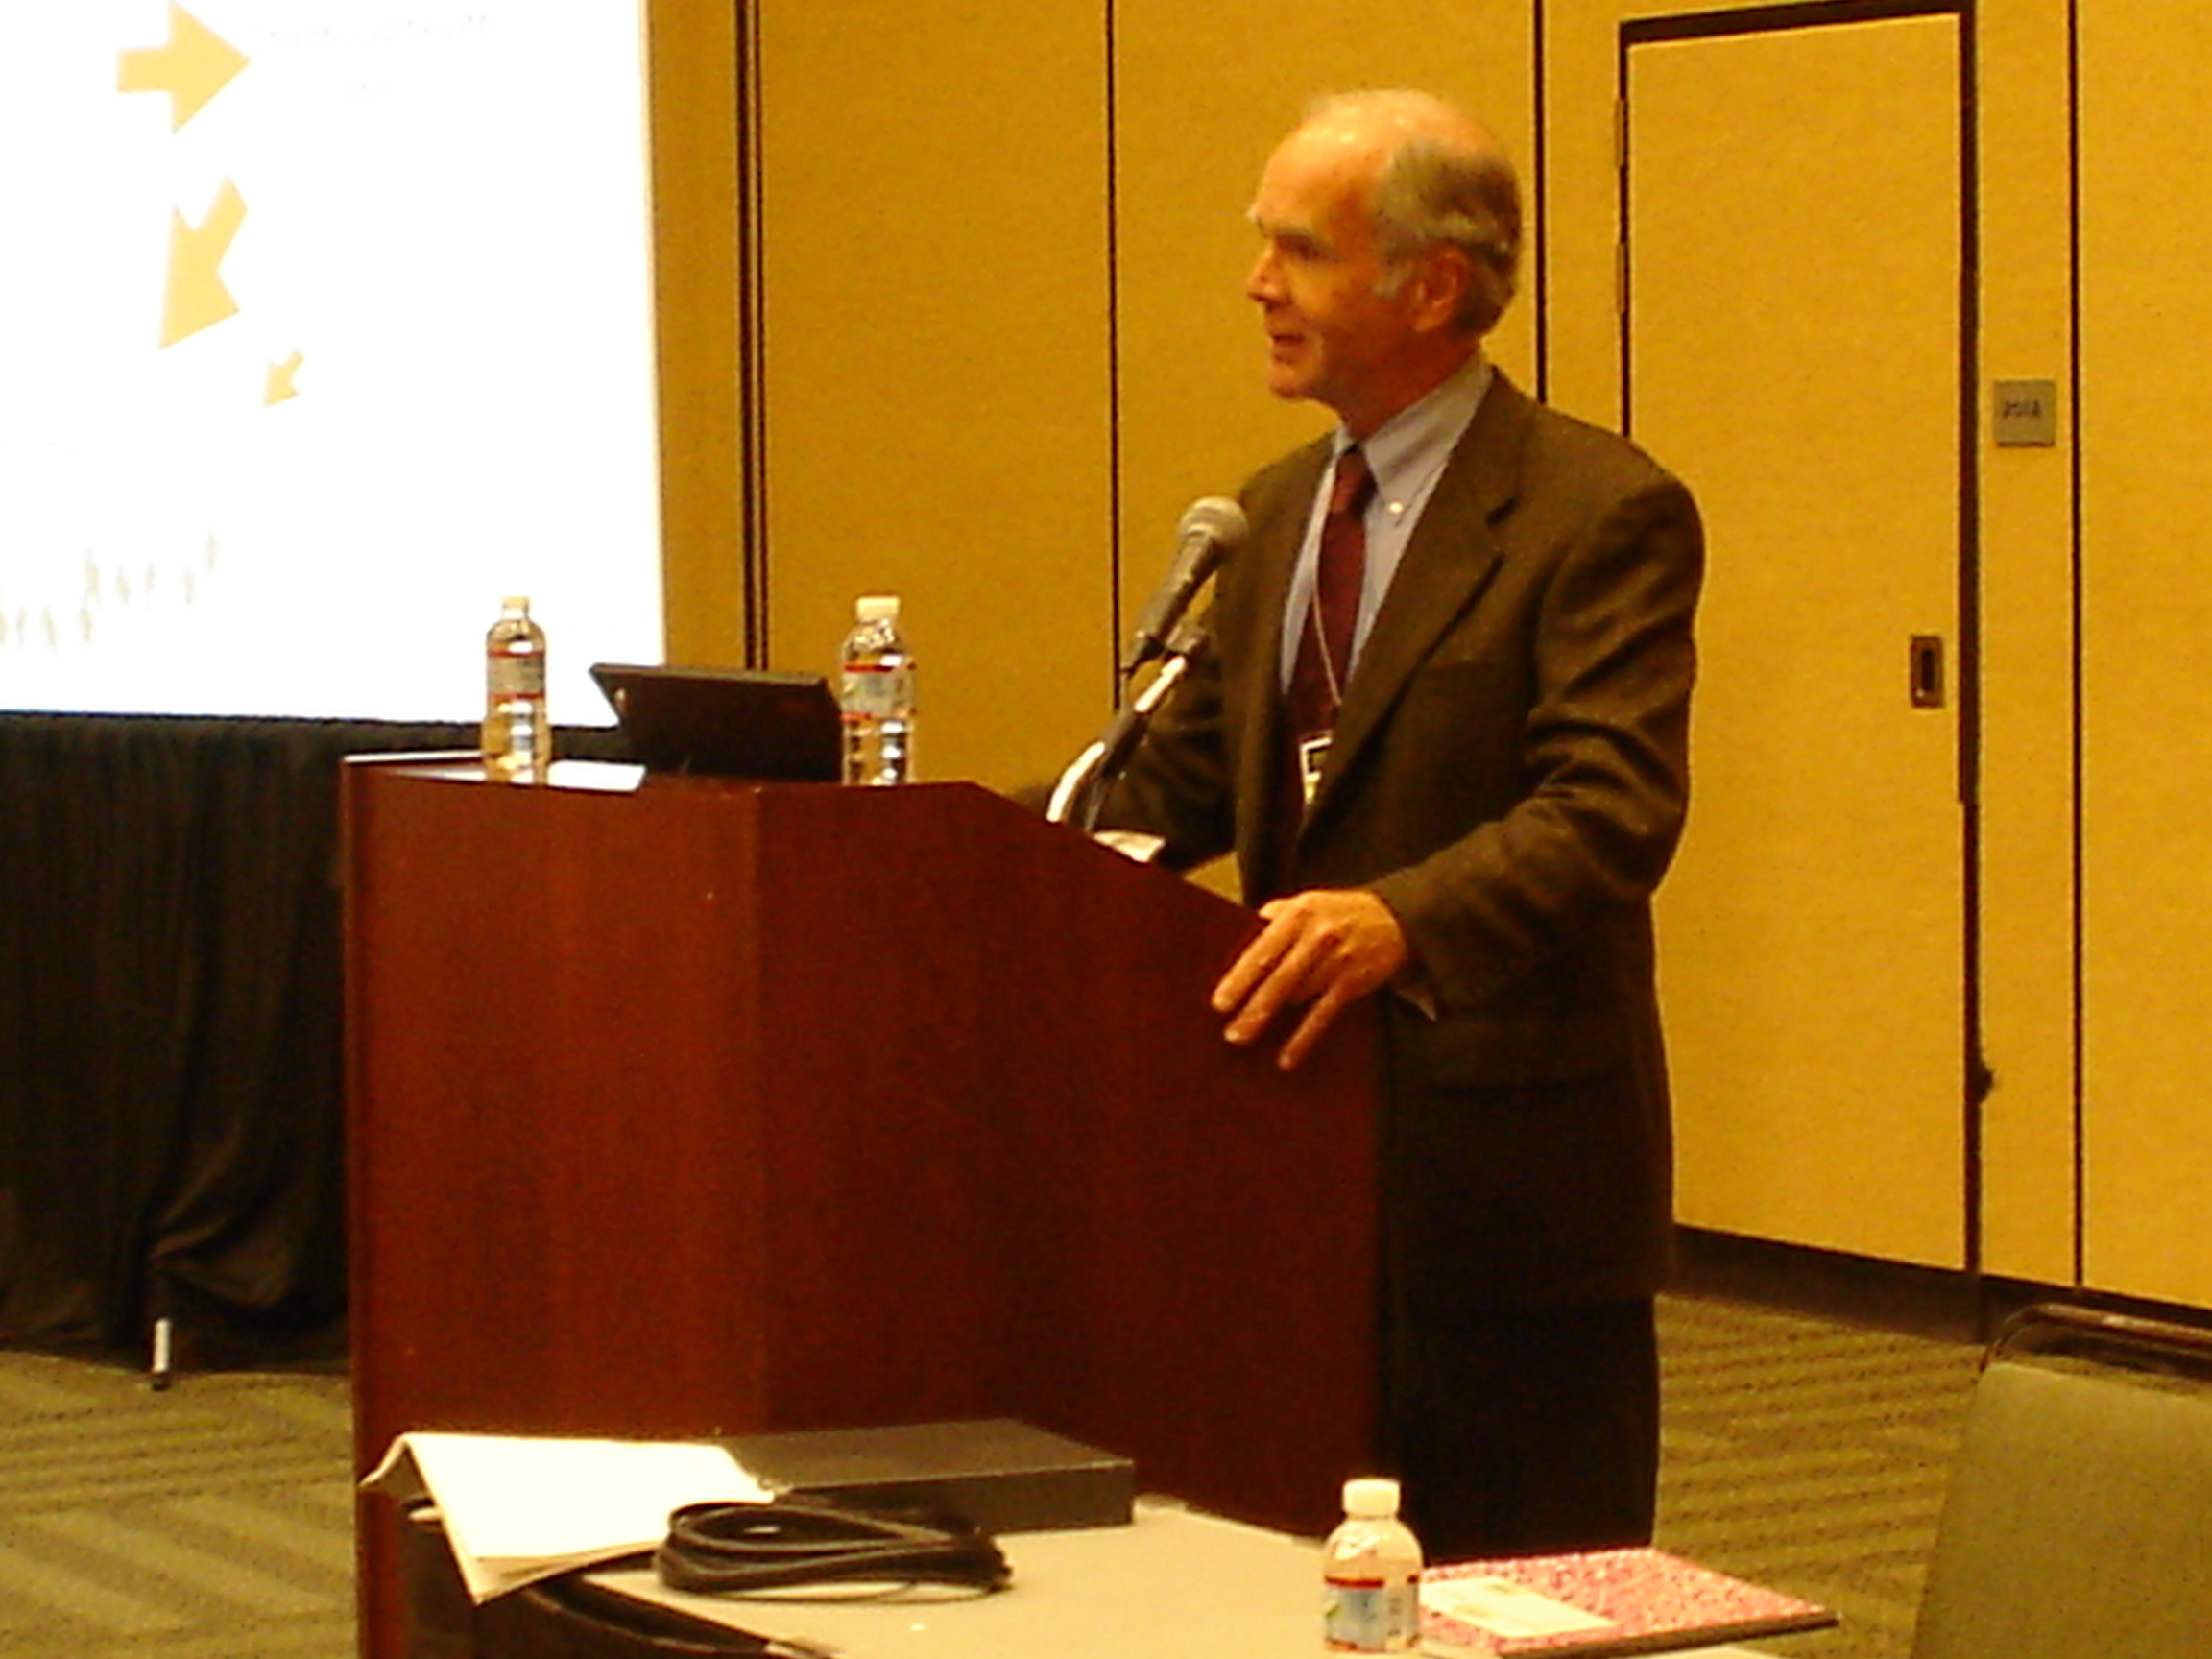 Dr. Ted Schettler speaks about healthy environments across generations at APHA